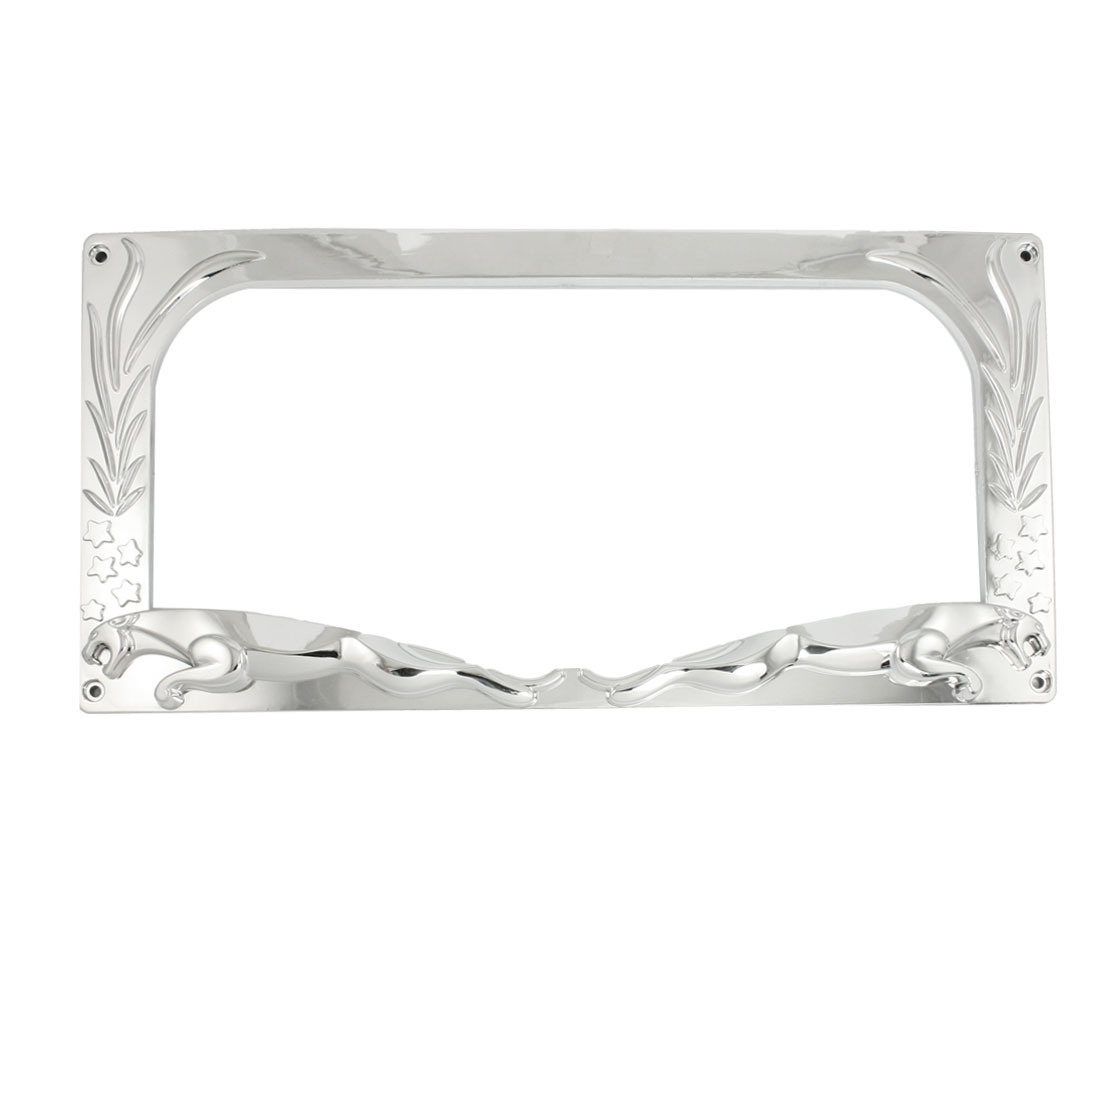 Auto Car Silver Tone Plastic Star Floral Pattern License Plate Frame